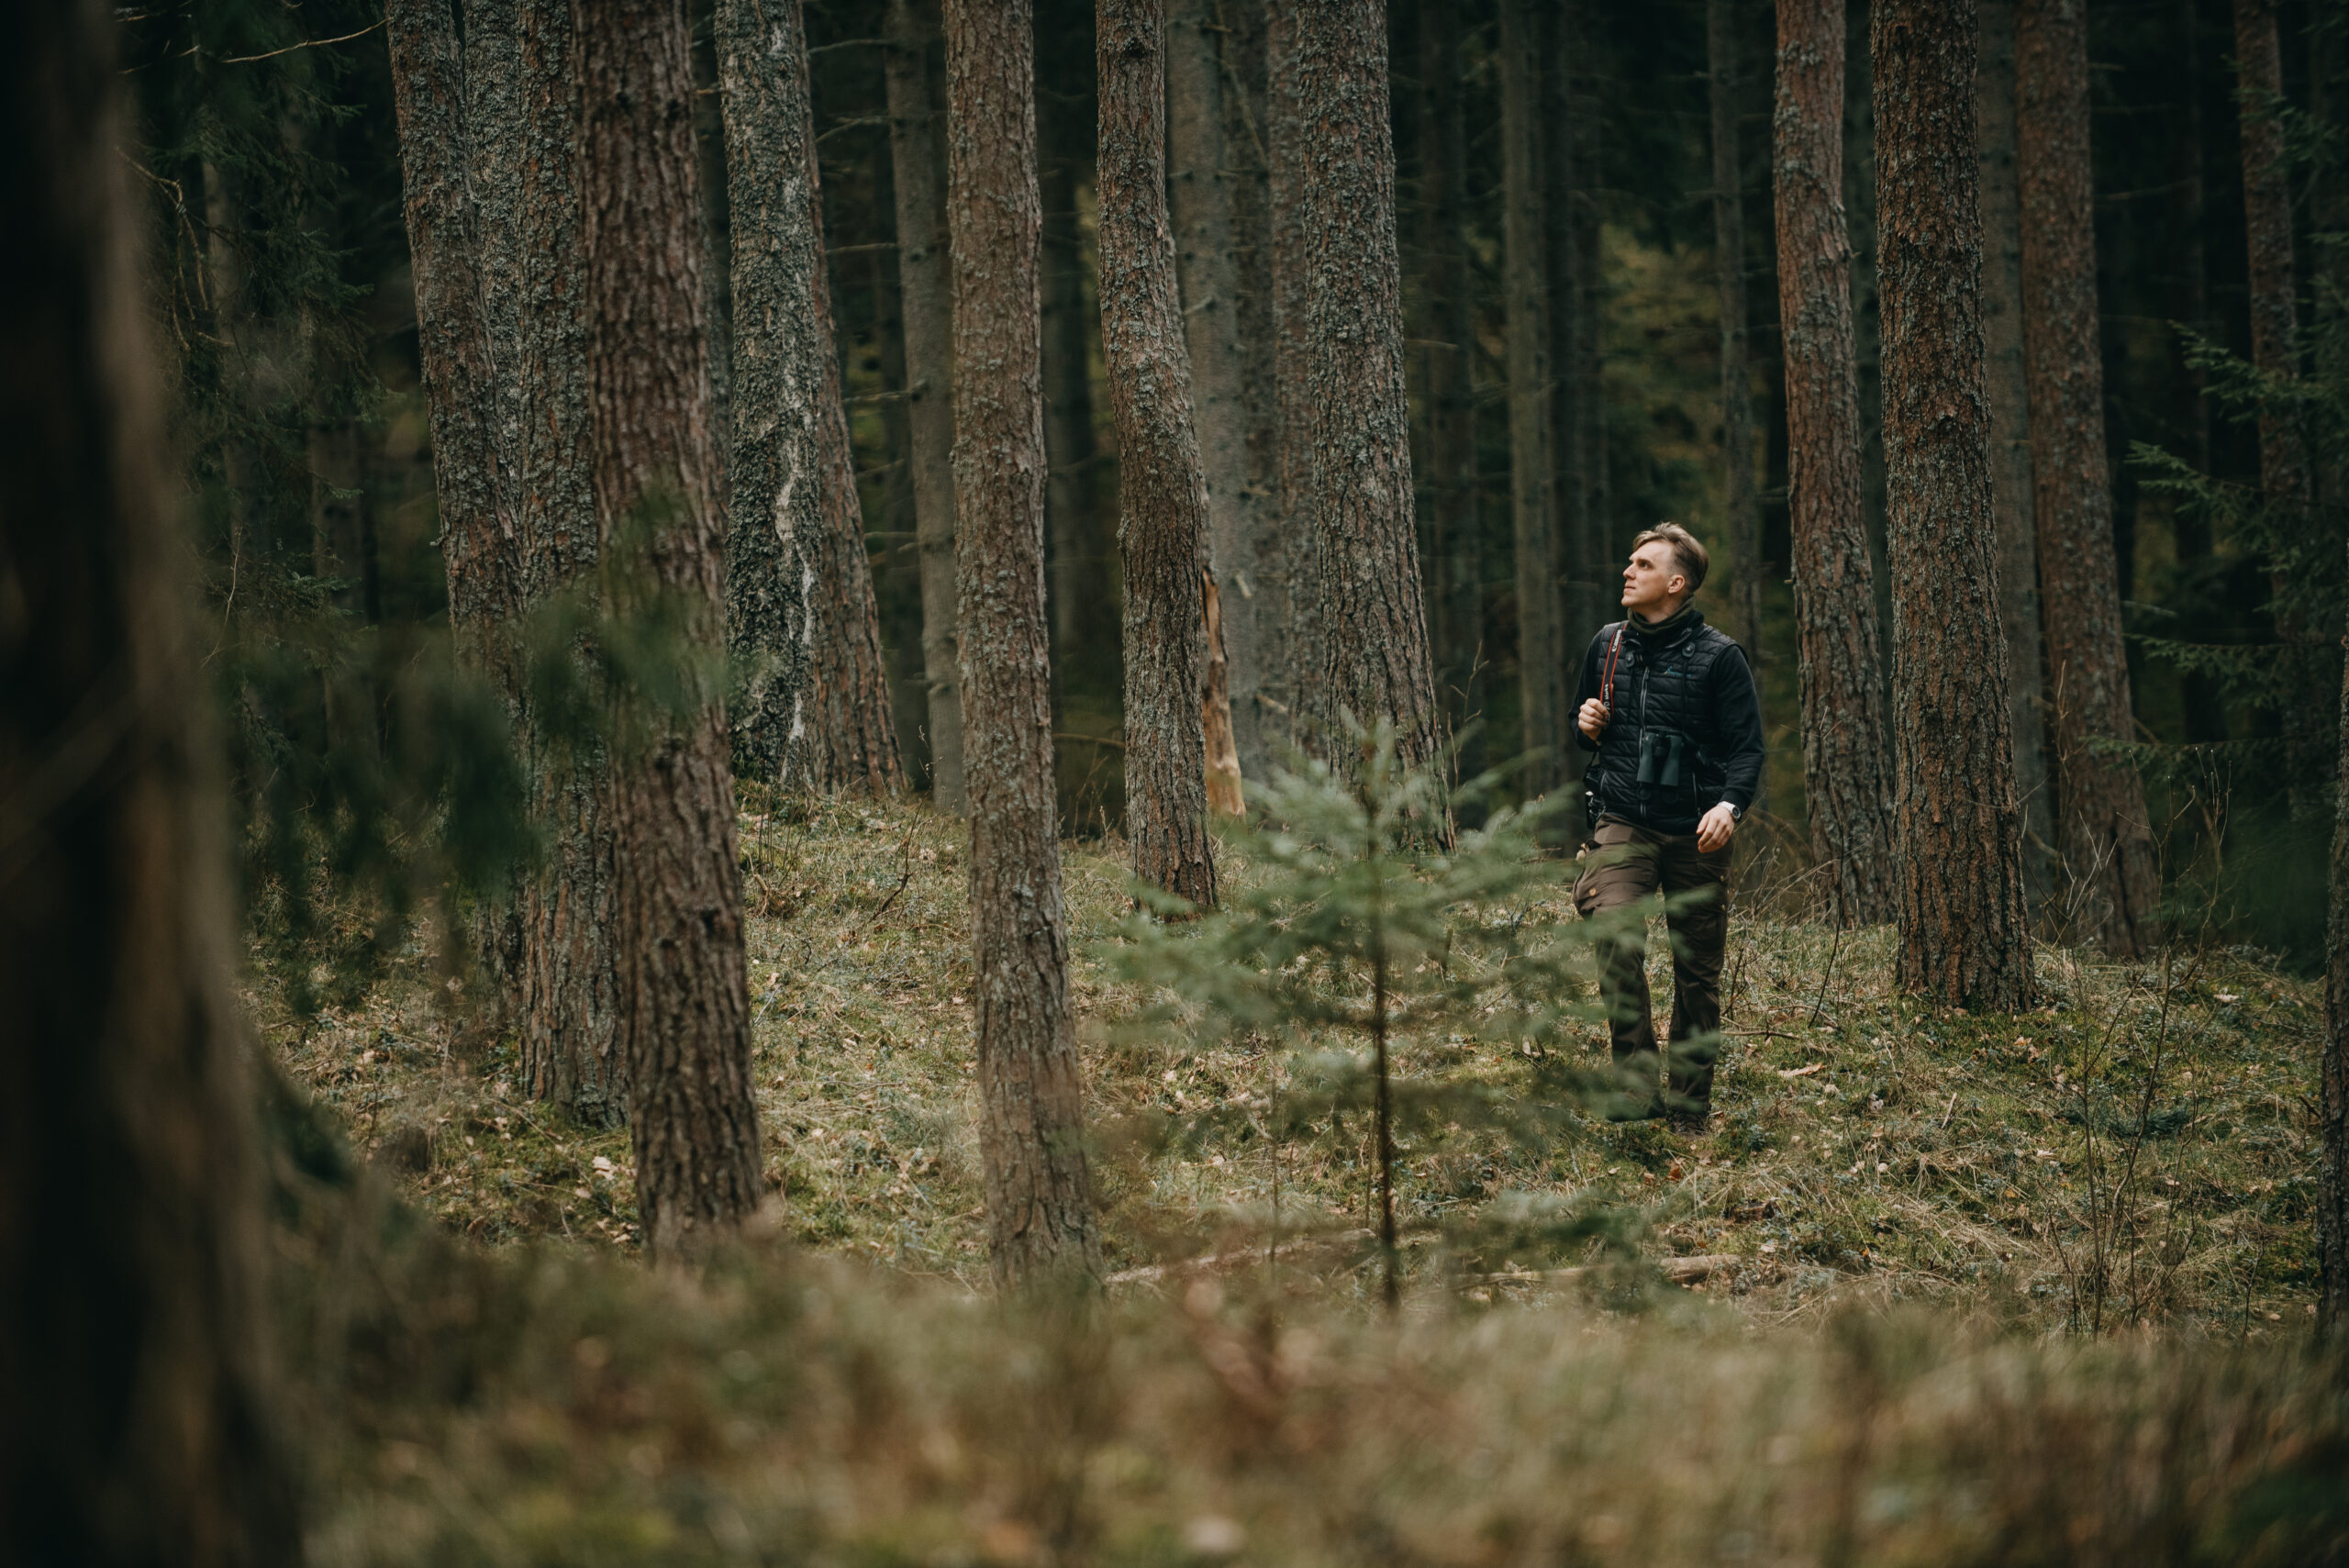 Guided tour FOLLOWING TRAILS AND PROMENADES OF JUODKRANTĖ'S ANCIENT WOODS